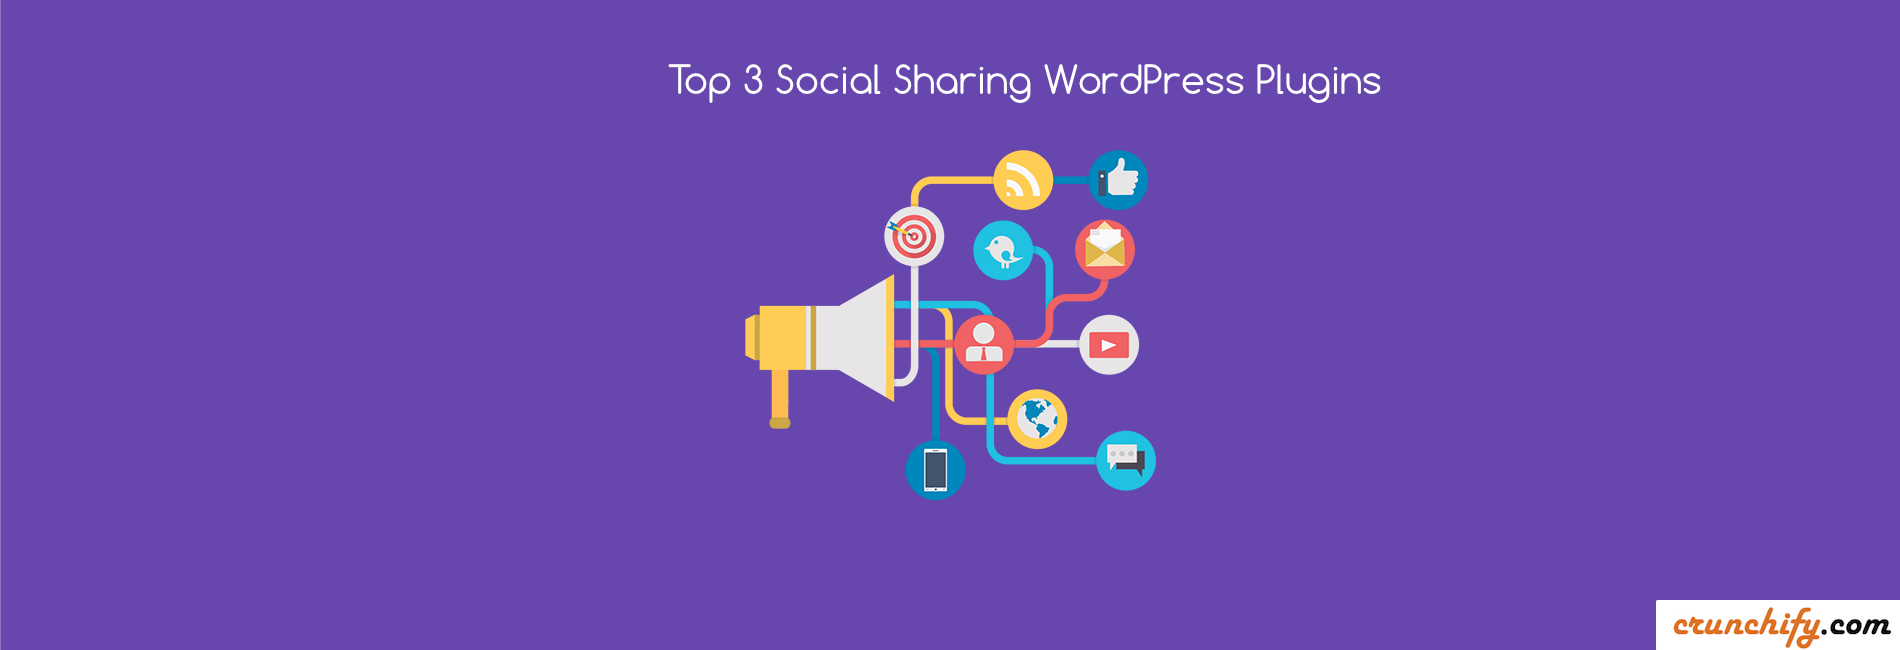 Top 3 WordPress Social Sharing Plugins